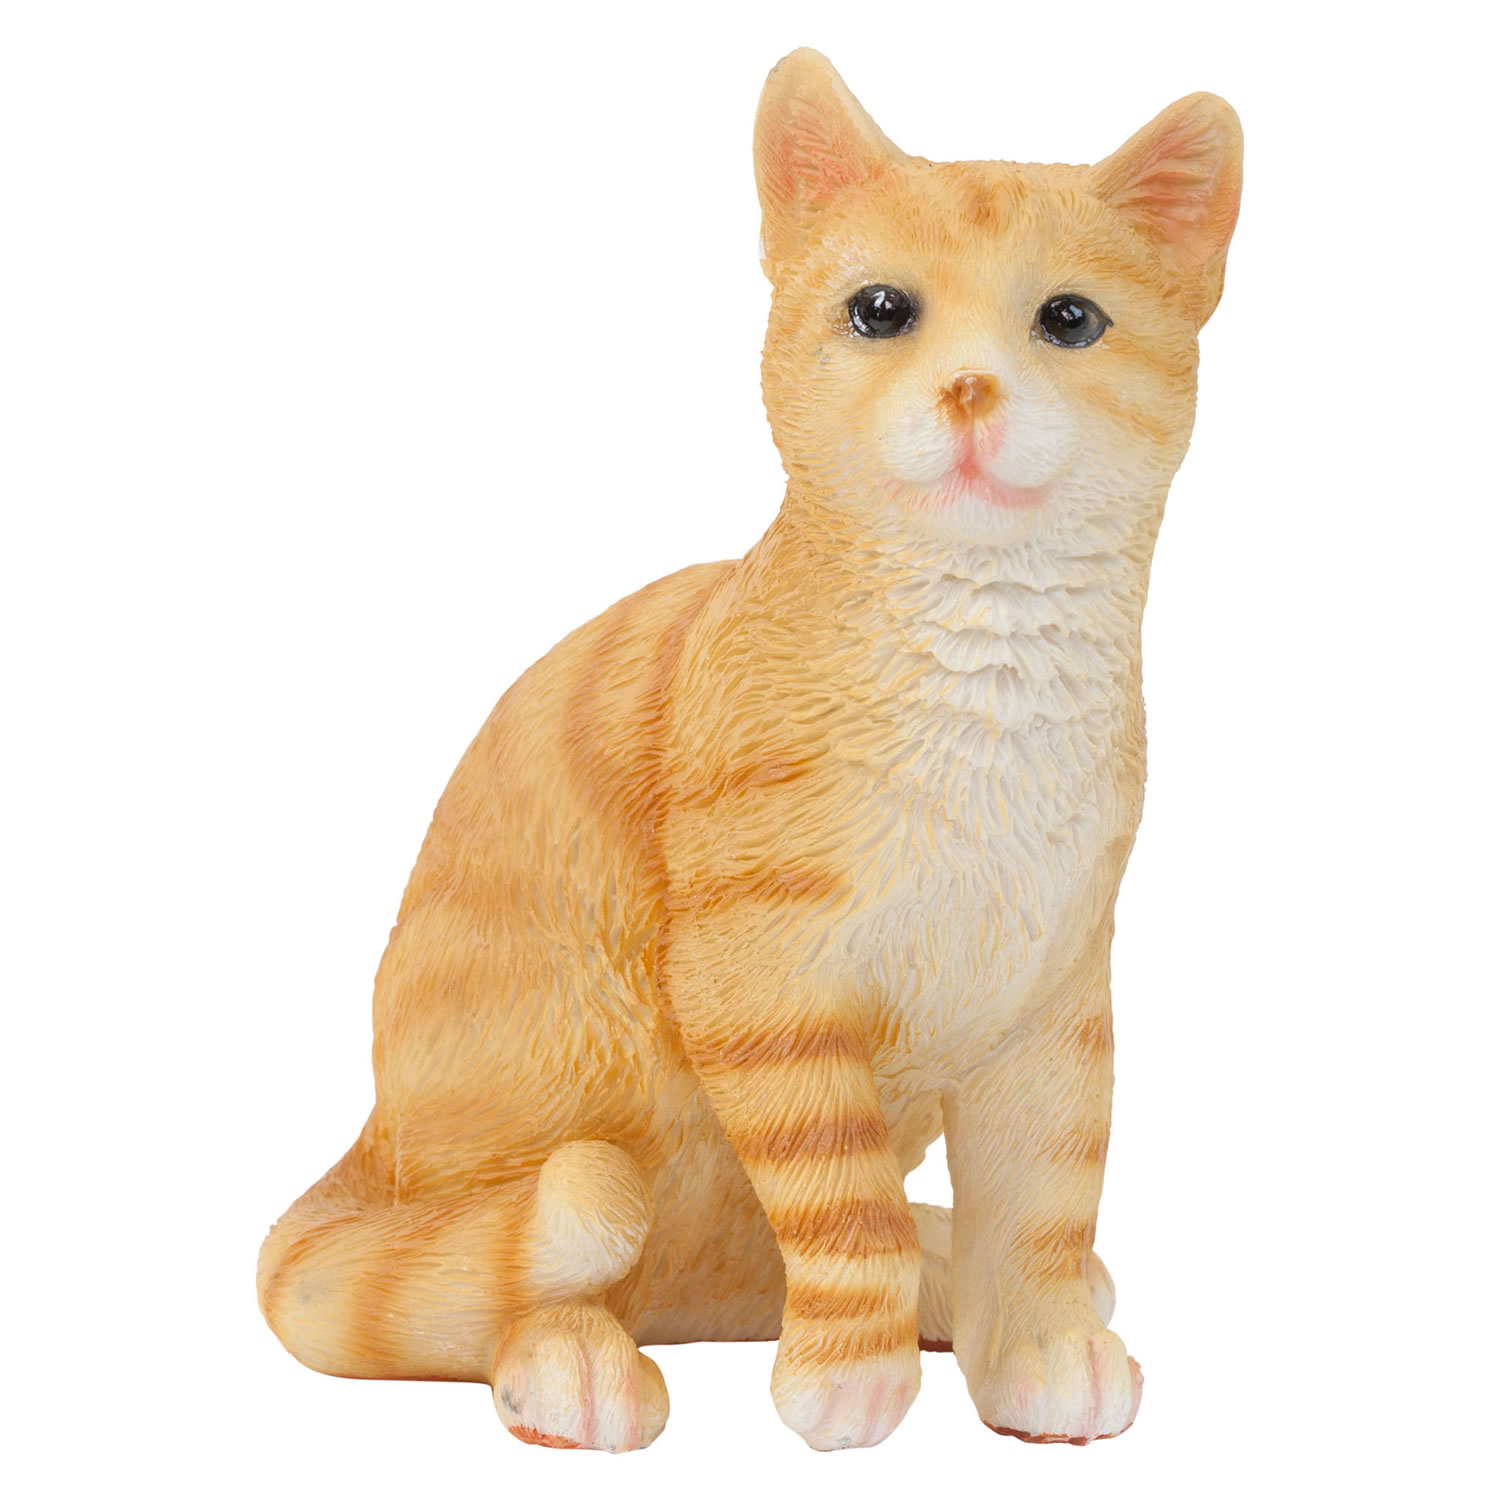 Realistic Small 12cm Sitting Ginger Cat Polyresin Ornament